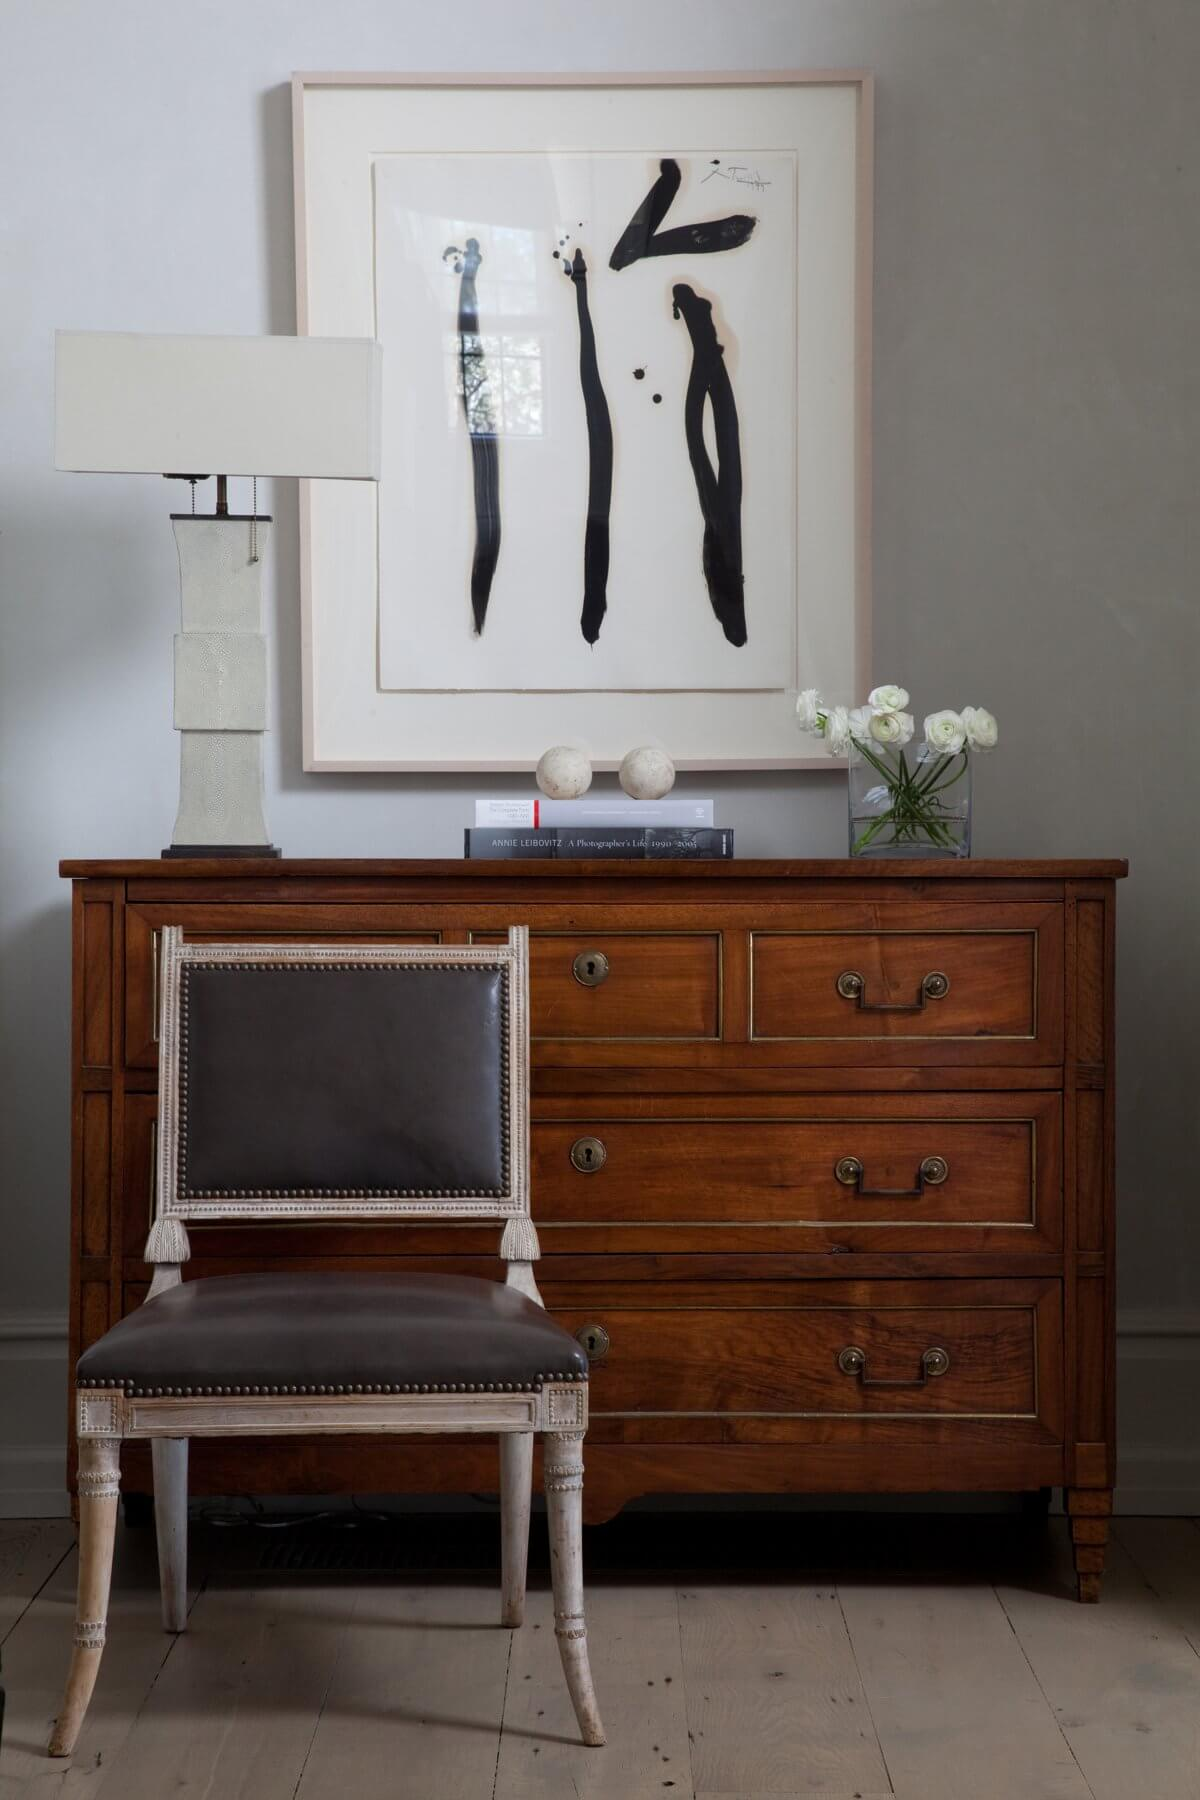 An antique Italian chest with Ziggurat legs is flanked by a 19th Century English regency chair in the entry of the home. Image: Miller Mobley